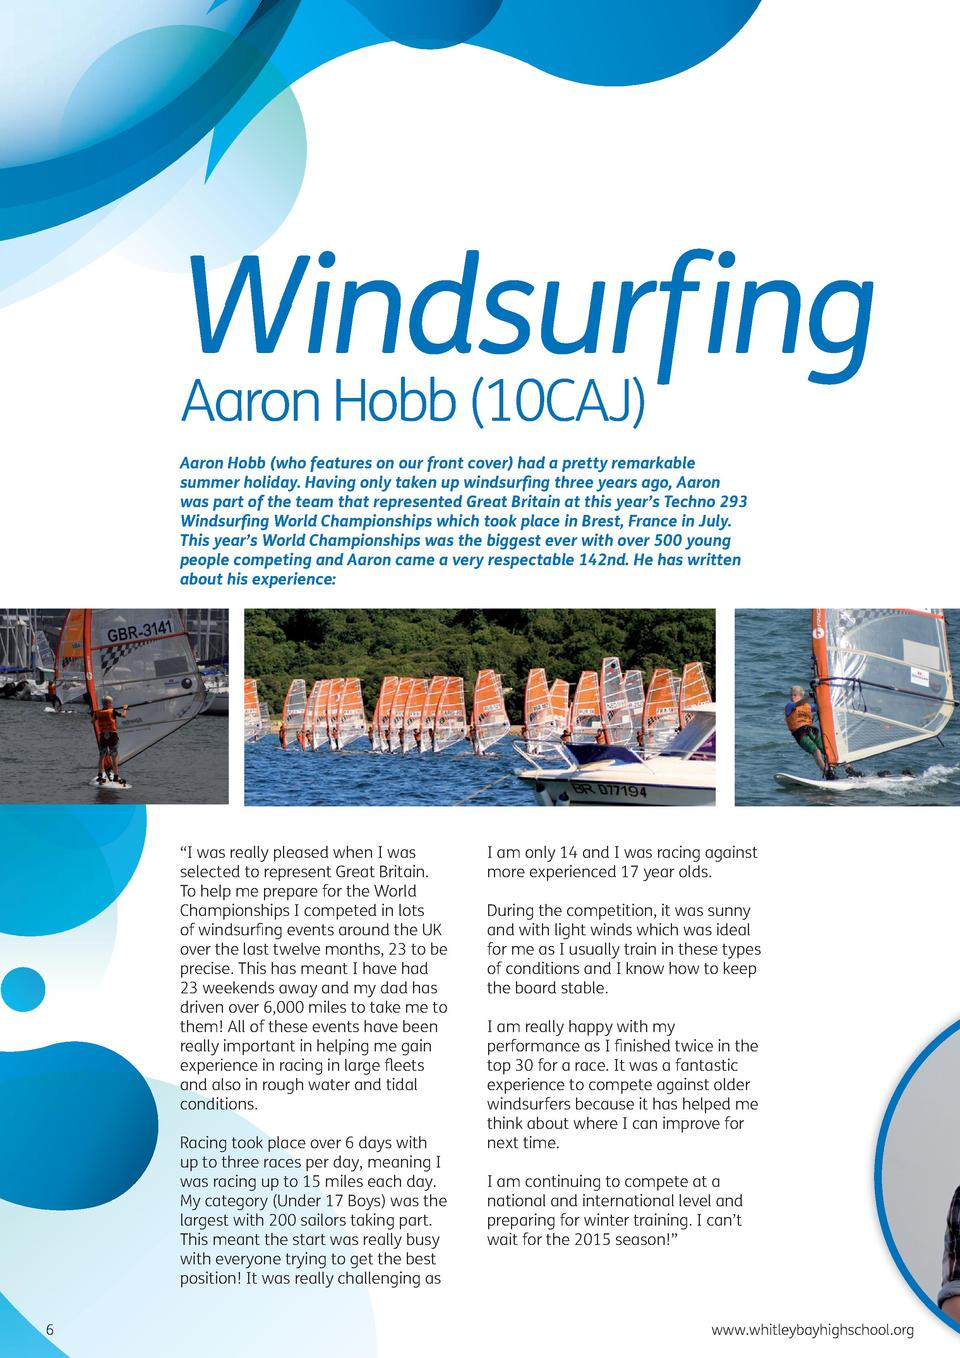 Windsurfing Aaron Hobb  10CAJ  Aaron Hobb  who features on our front cover  had a pretty remarkable summer holiday. Having...